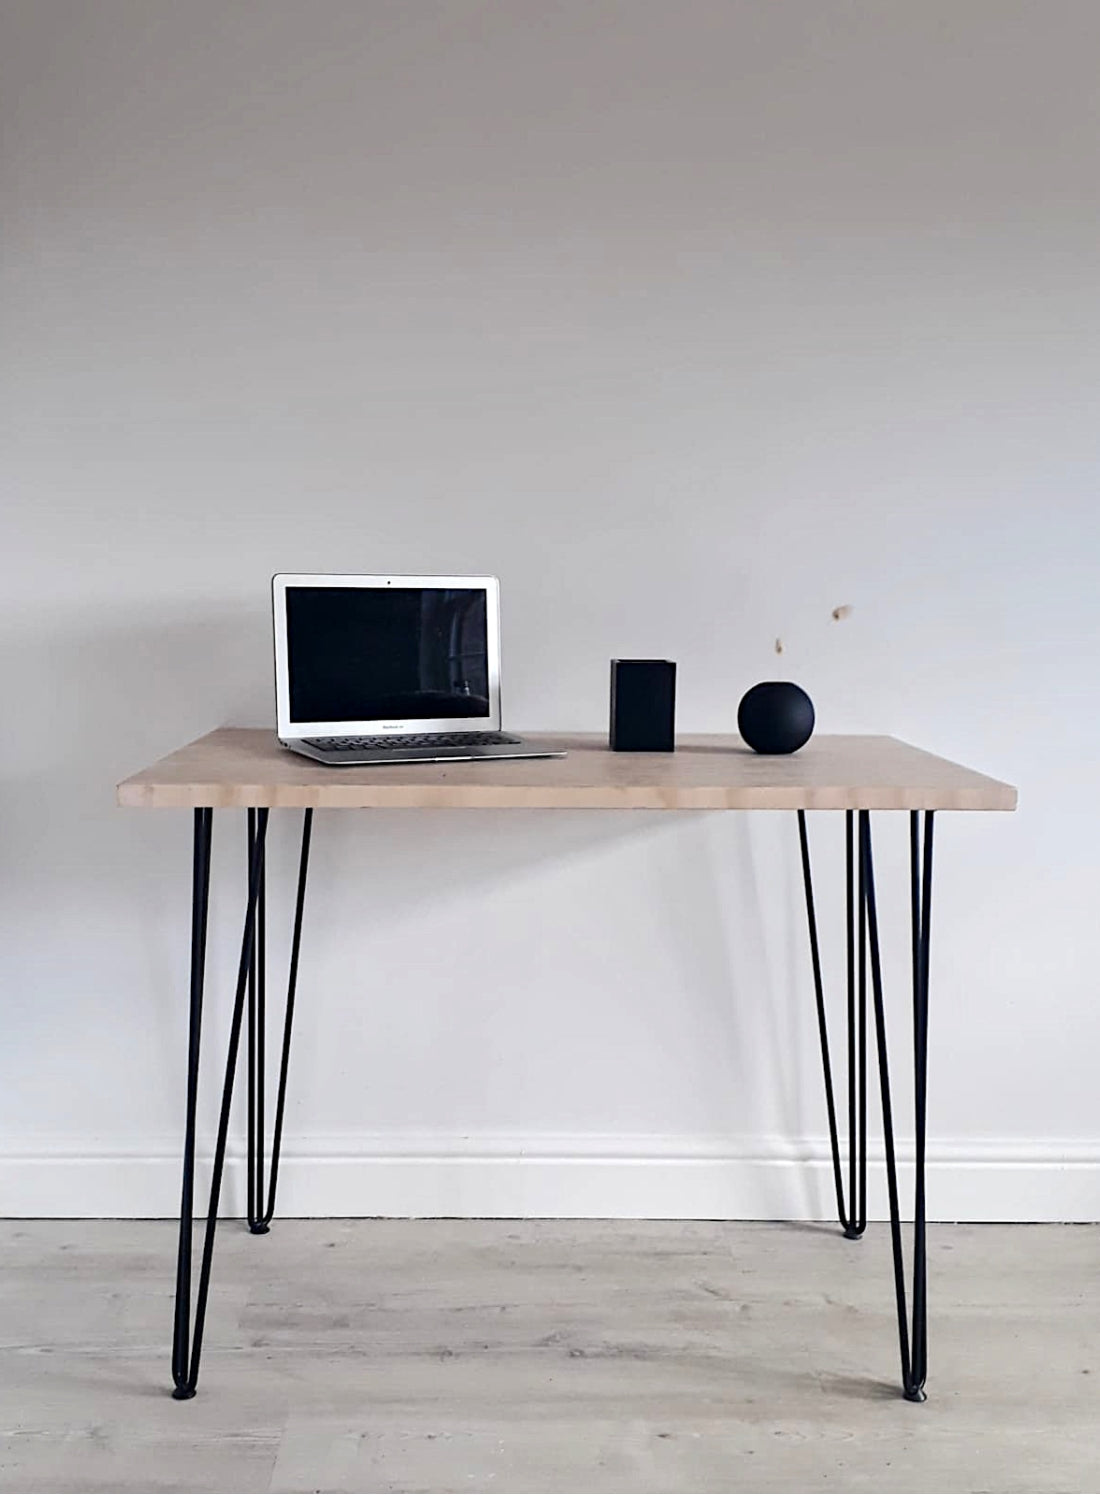 End Grain Home Office Desk with Black Hairpin Legs